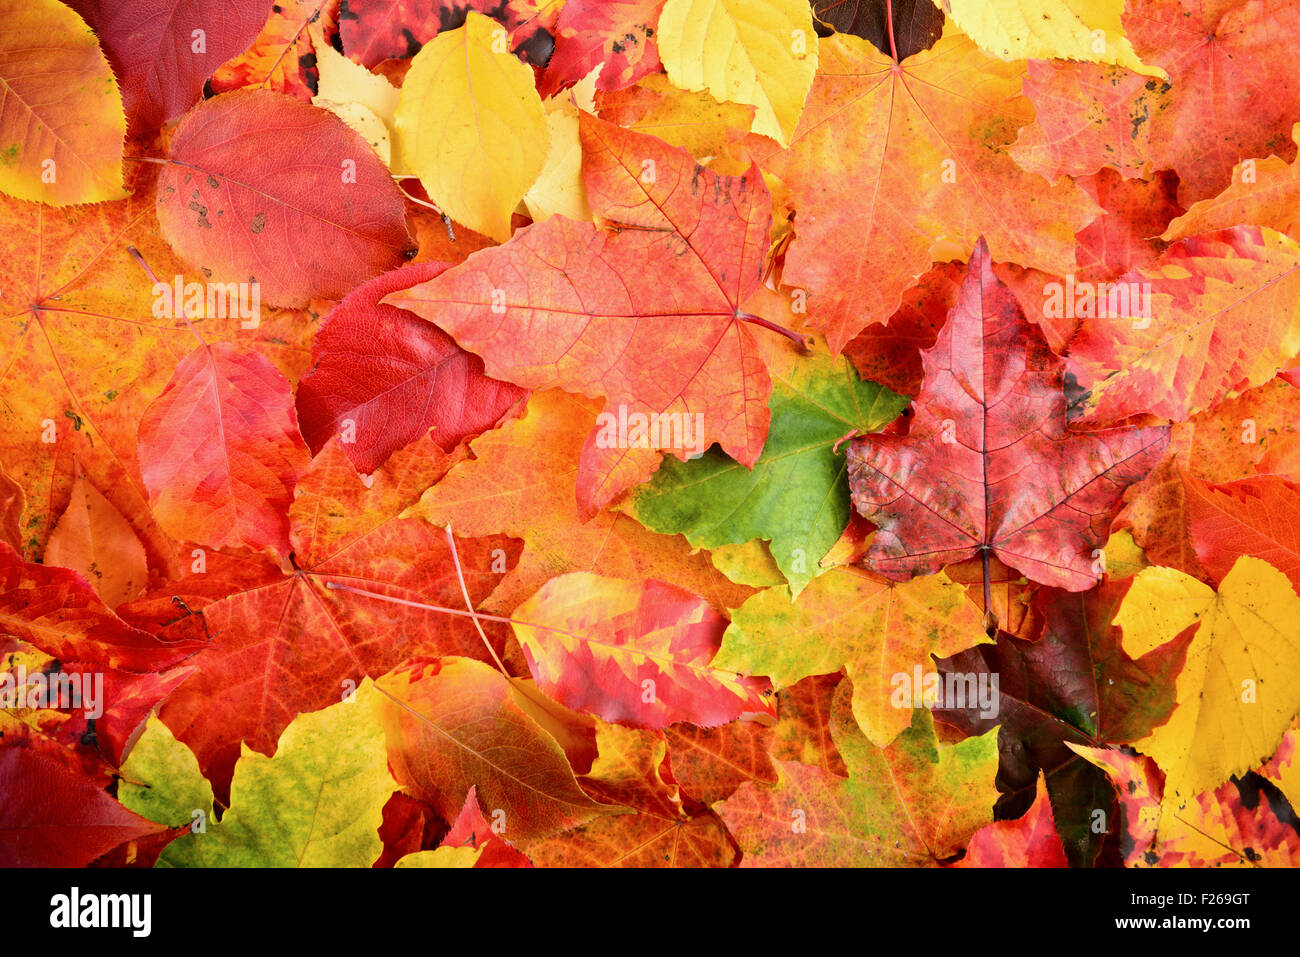 Fall autumn leaves background sharp and clean - Stock Image